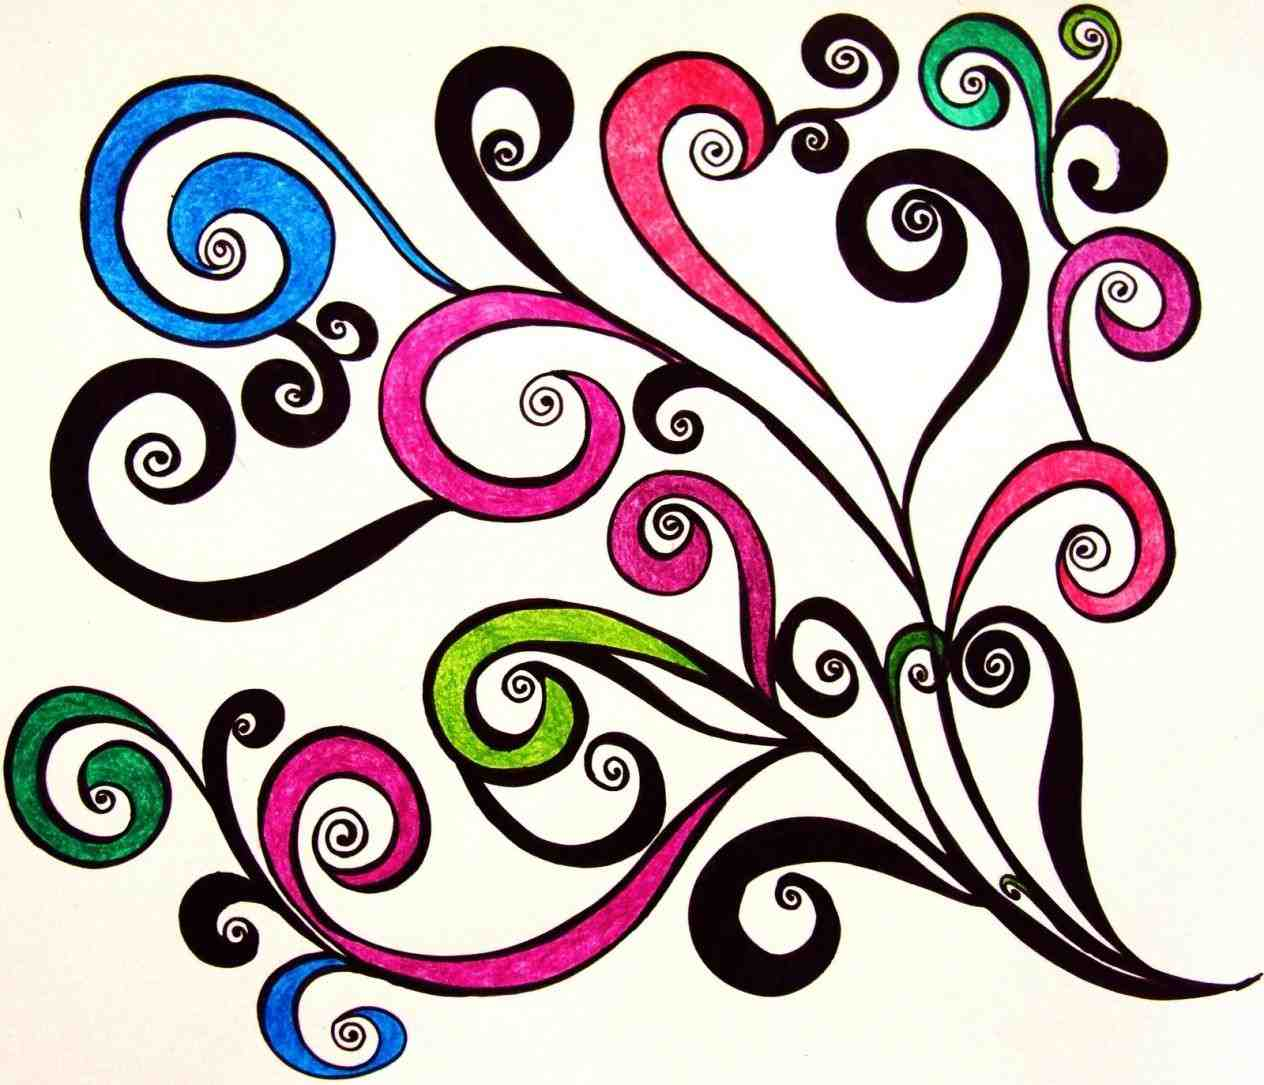 1264x1085 Swirl Cool Swirly Designs Patterns Clip Art Library